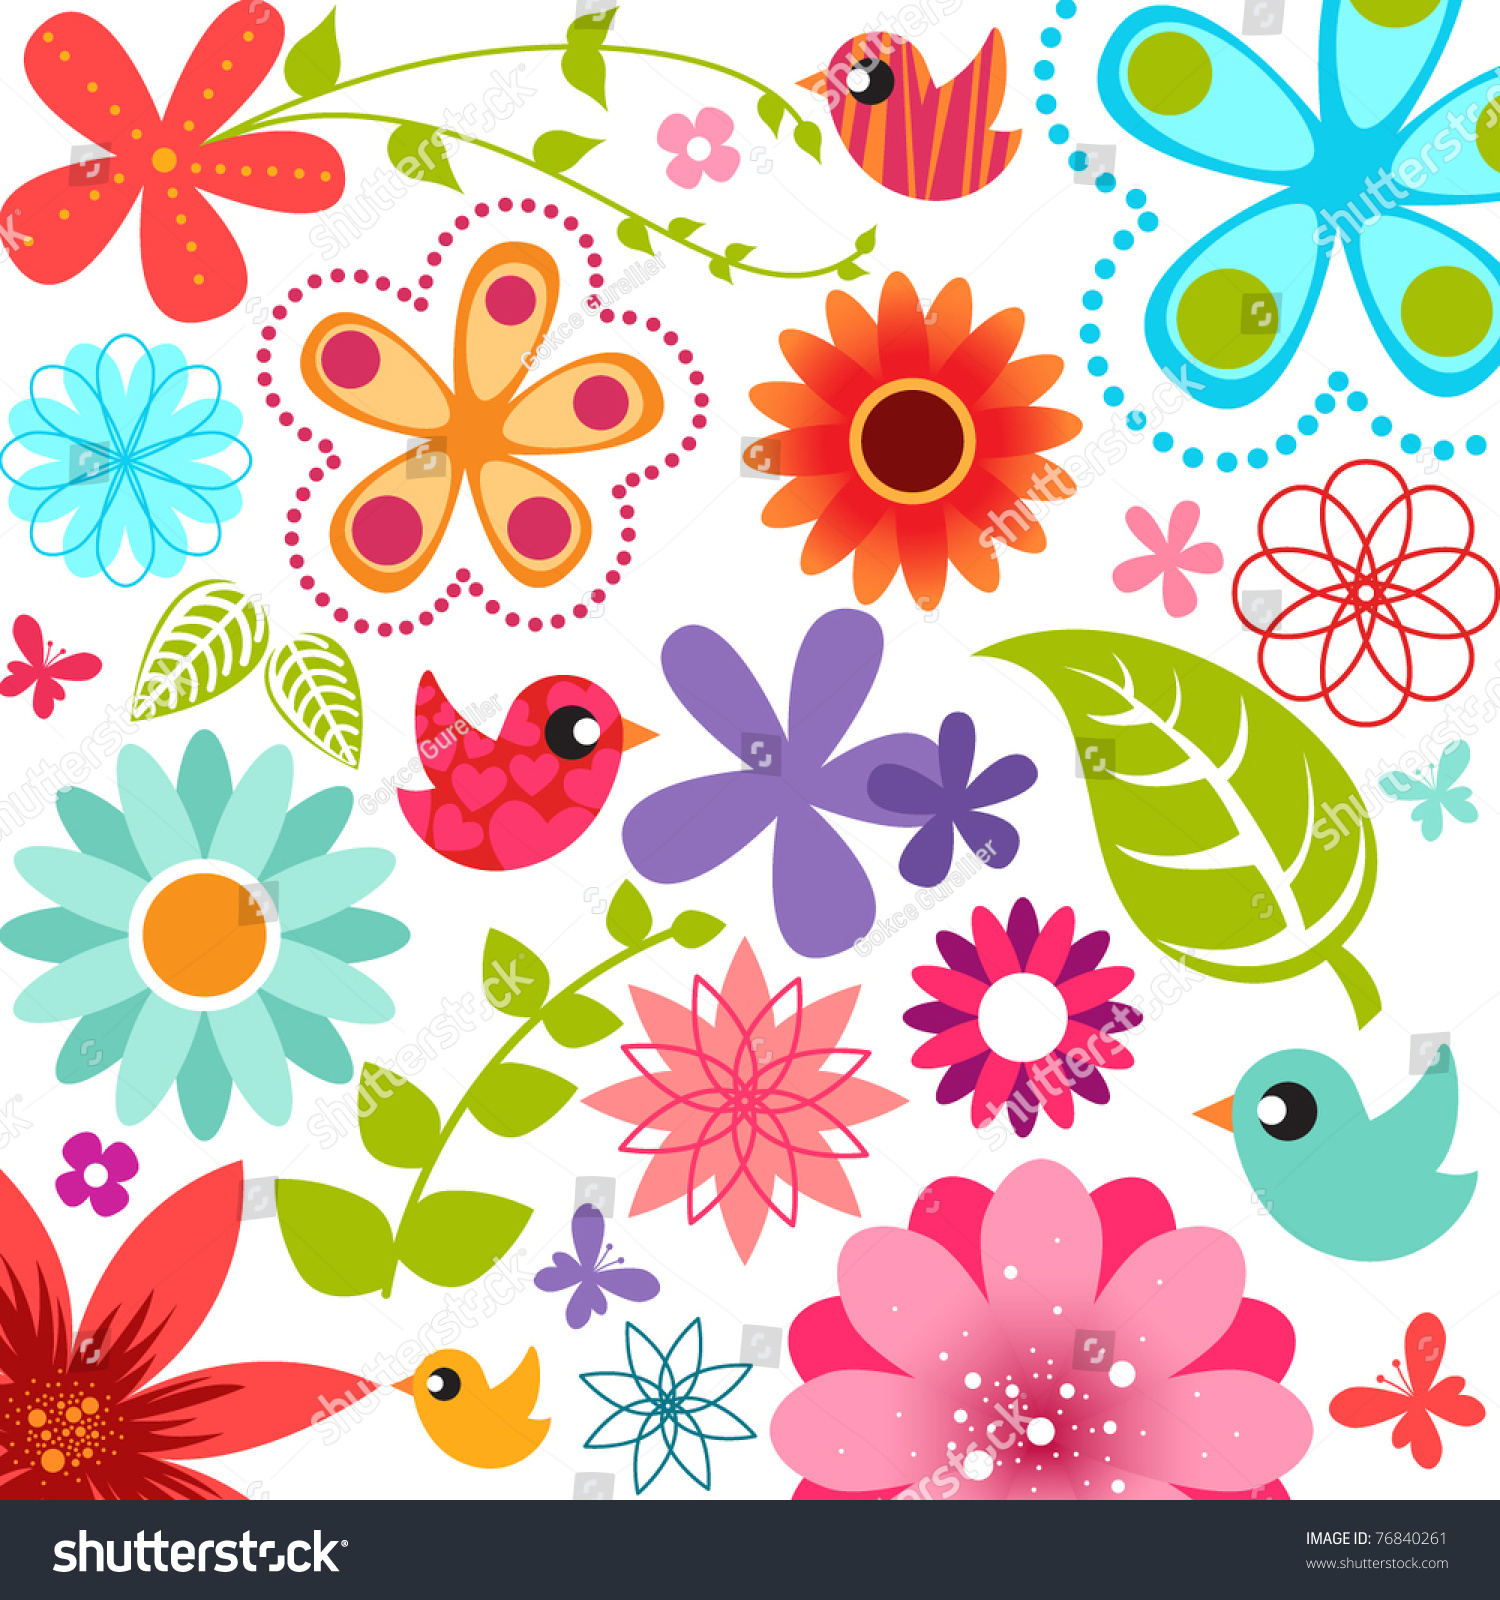 Spring Flower Backgrounds Clipart